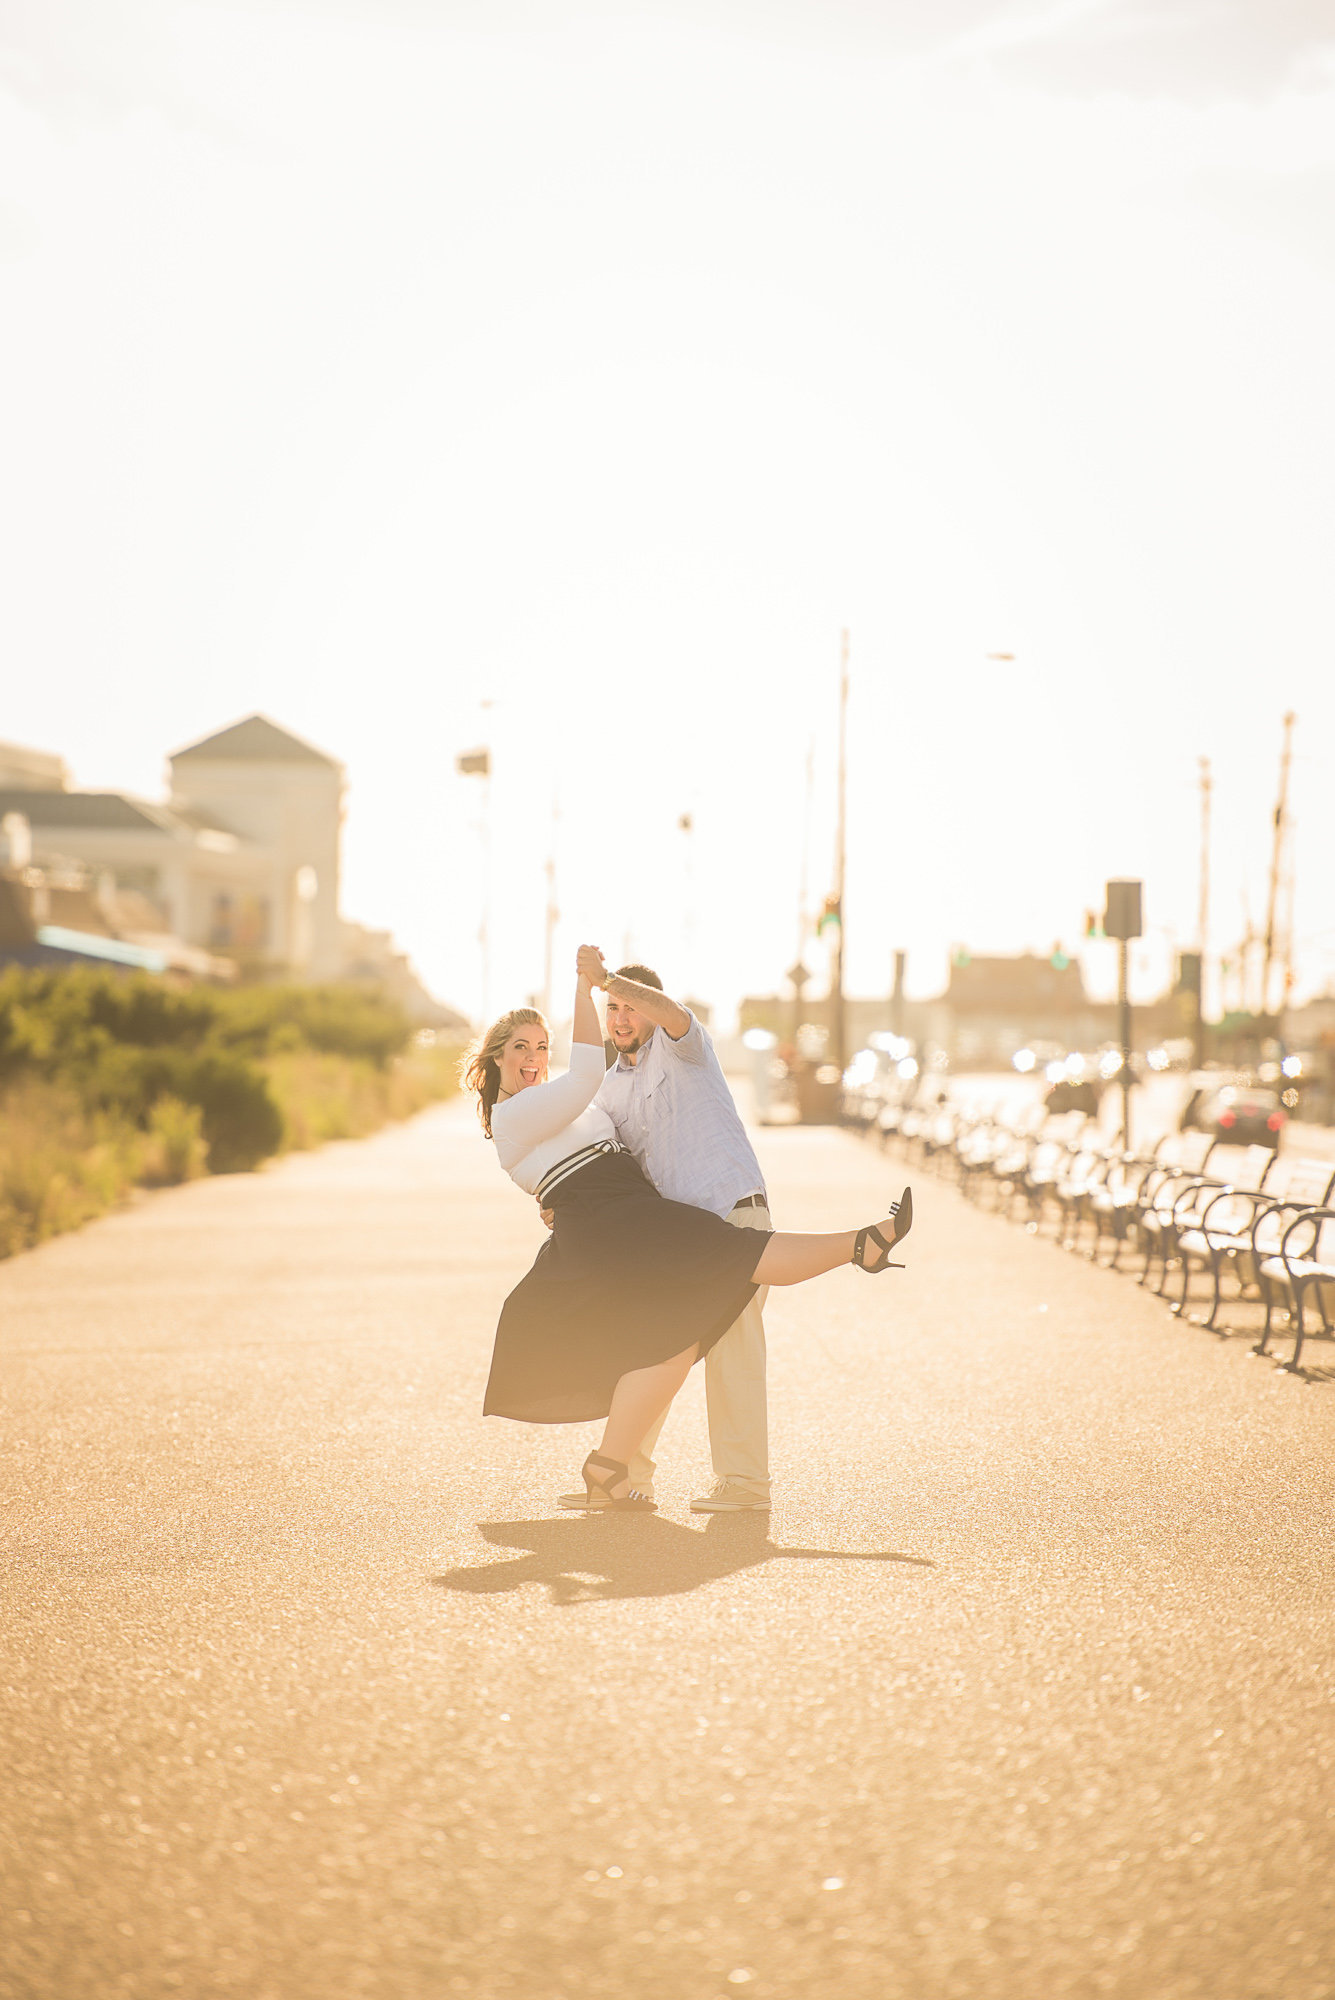 BeachProposal-39